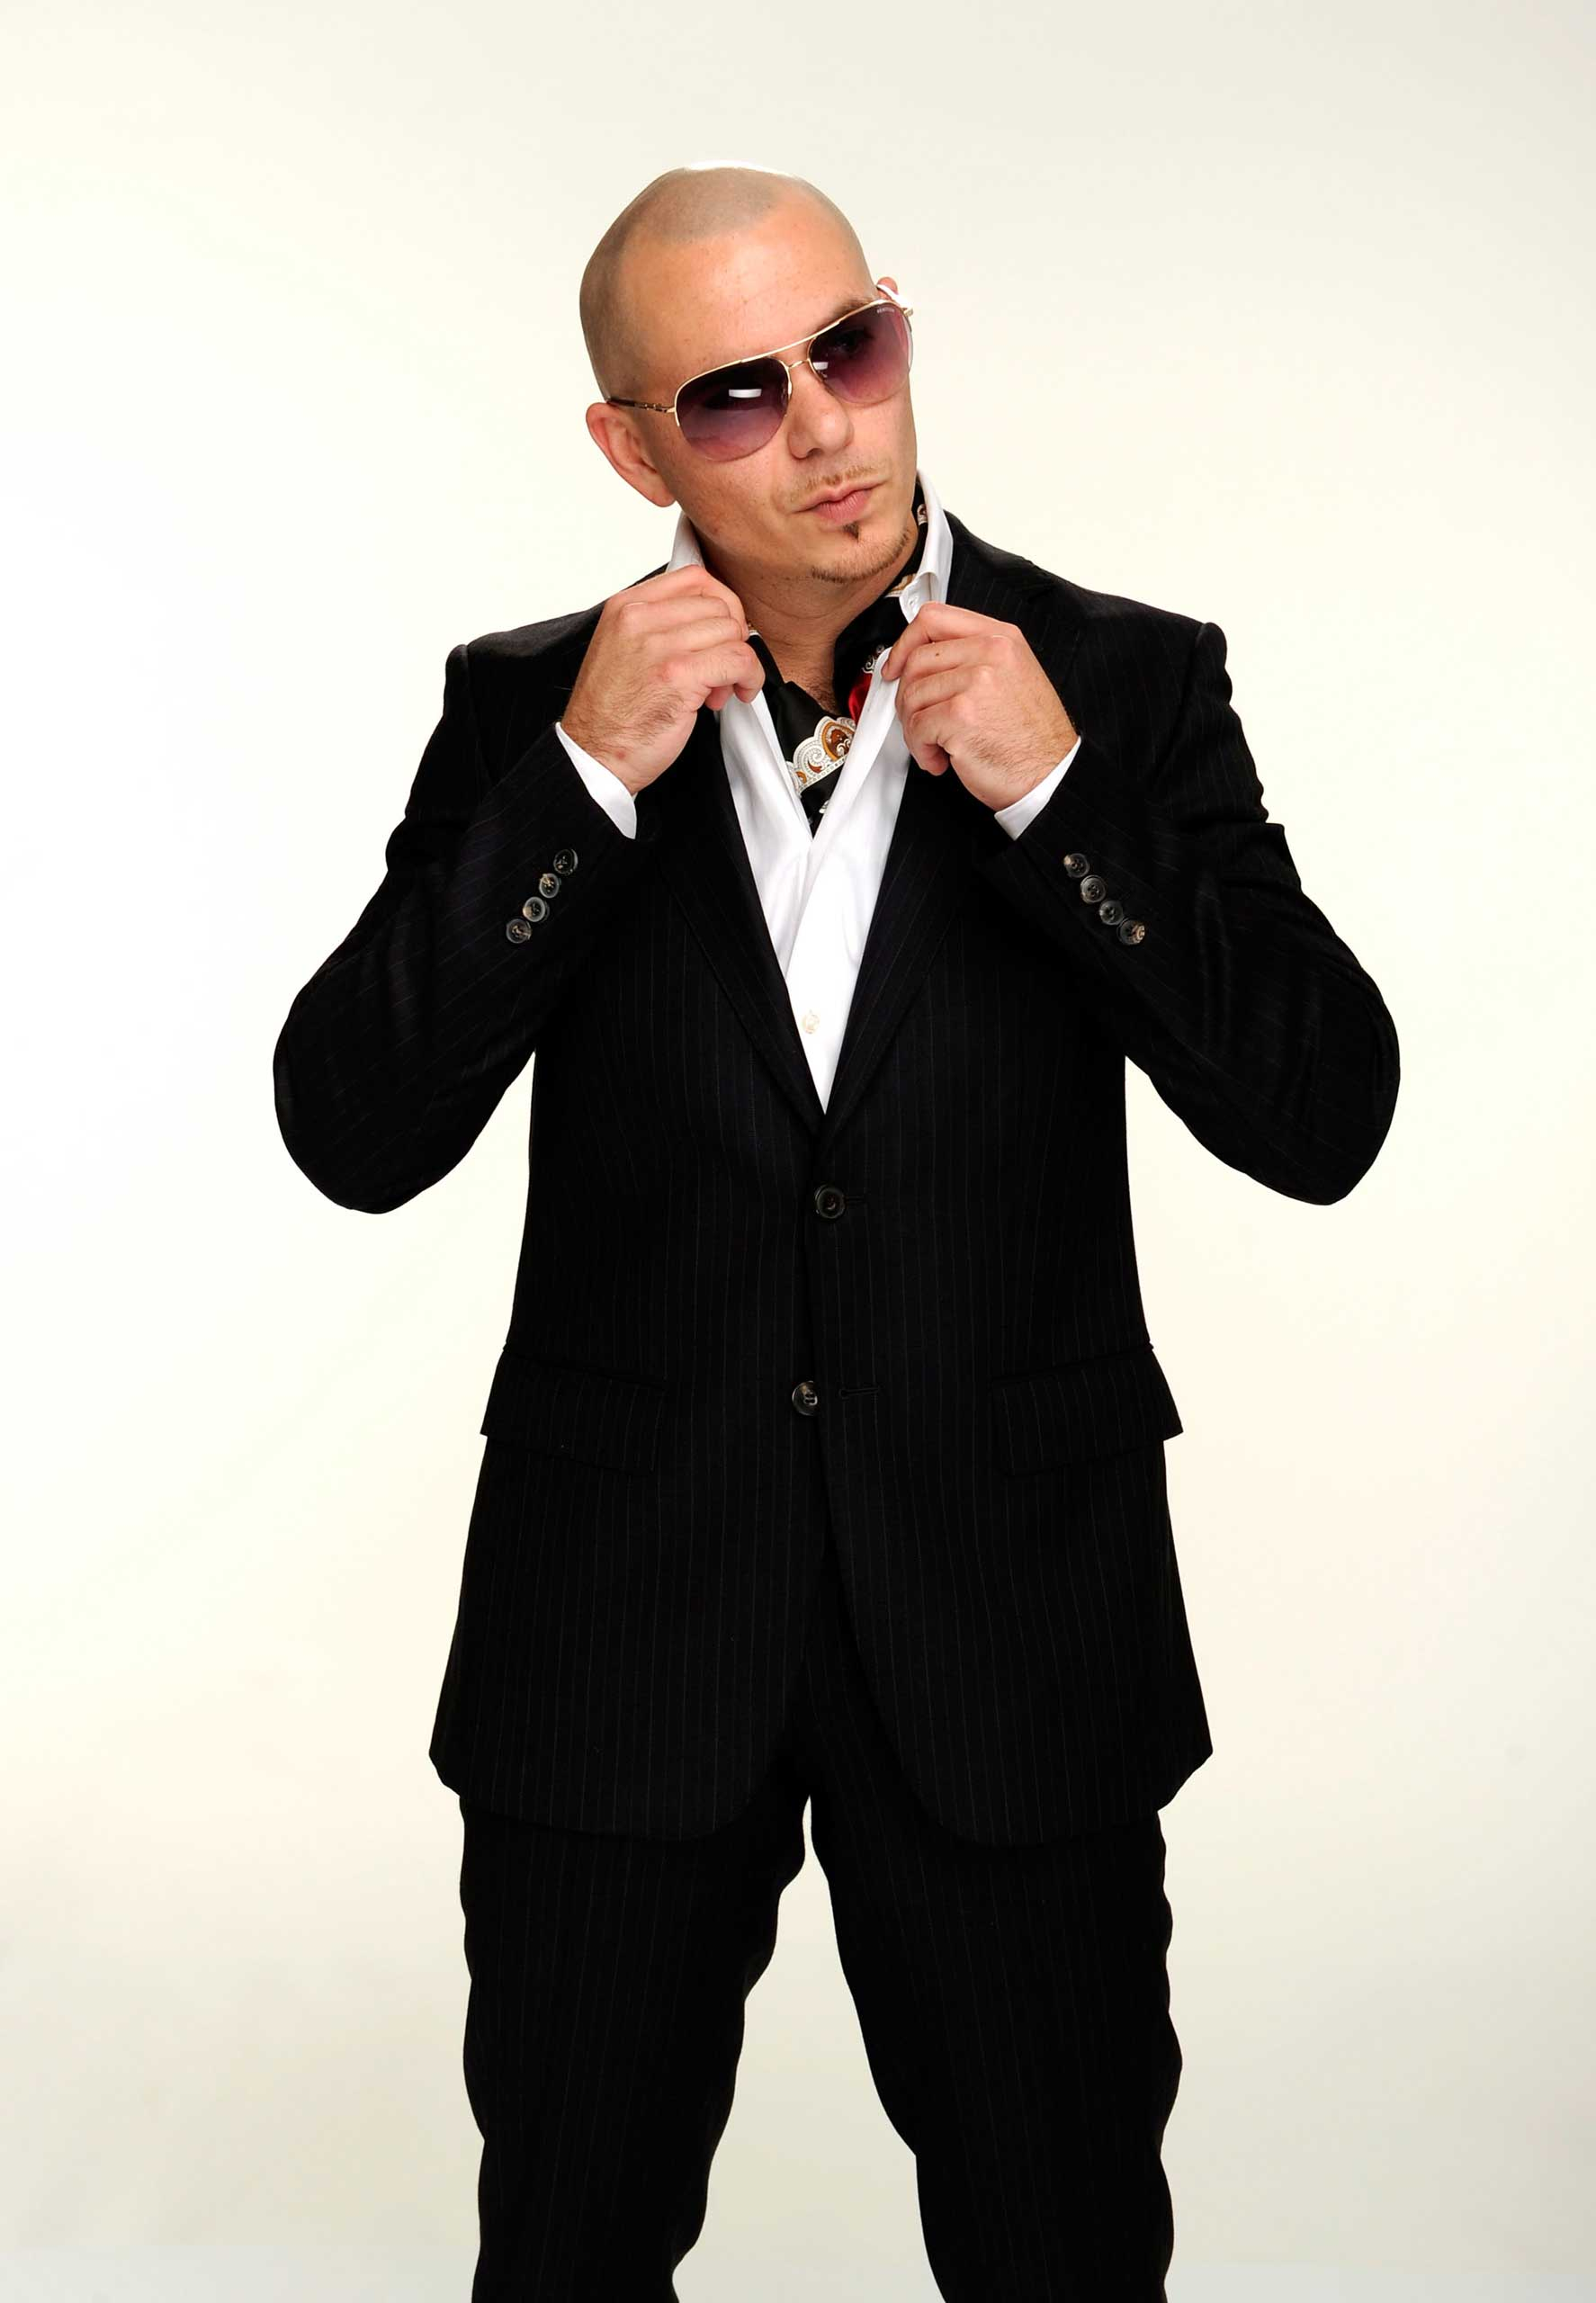 <b>Pitbull</b> Born in Miami to Cuban expats, the rapper has made a huge impression on the rap and reggaeton scene in Cuba and Latin America.